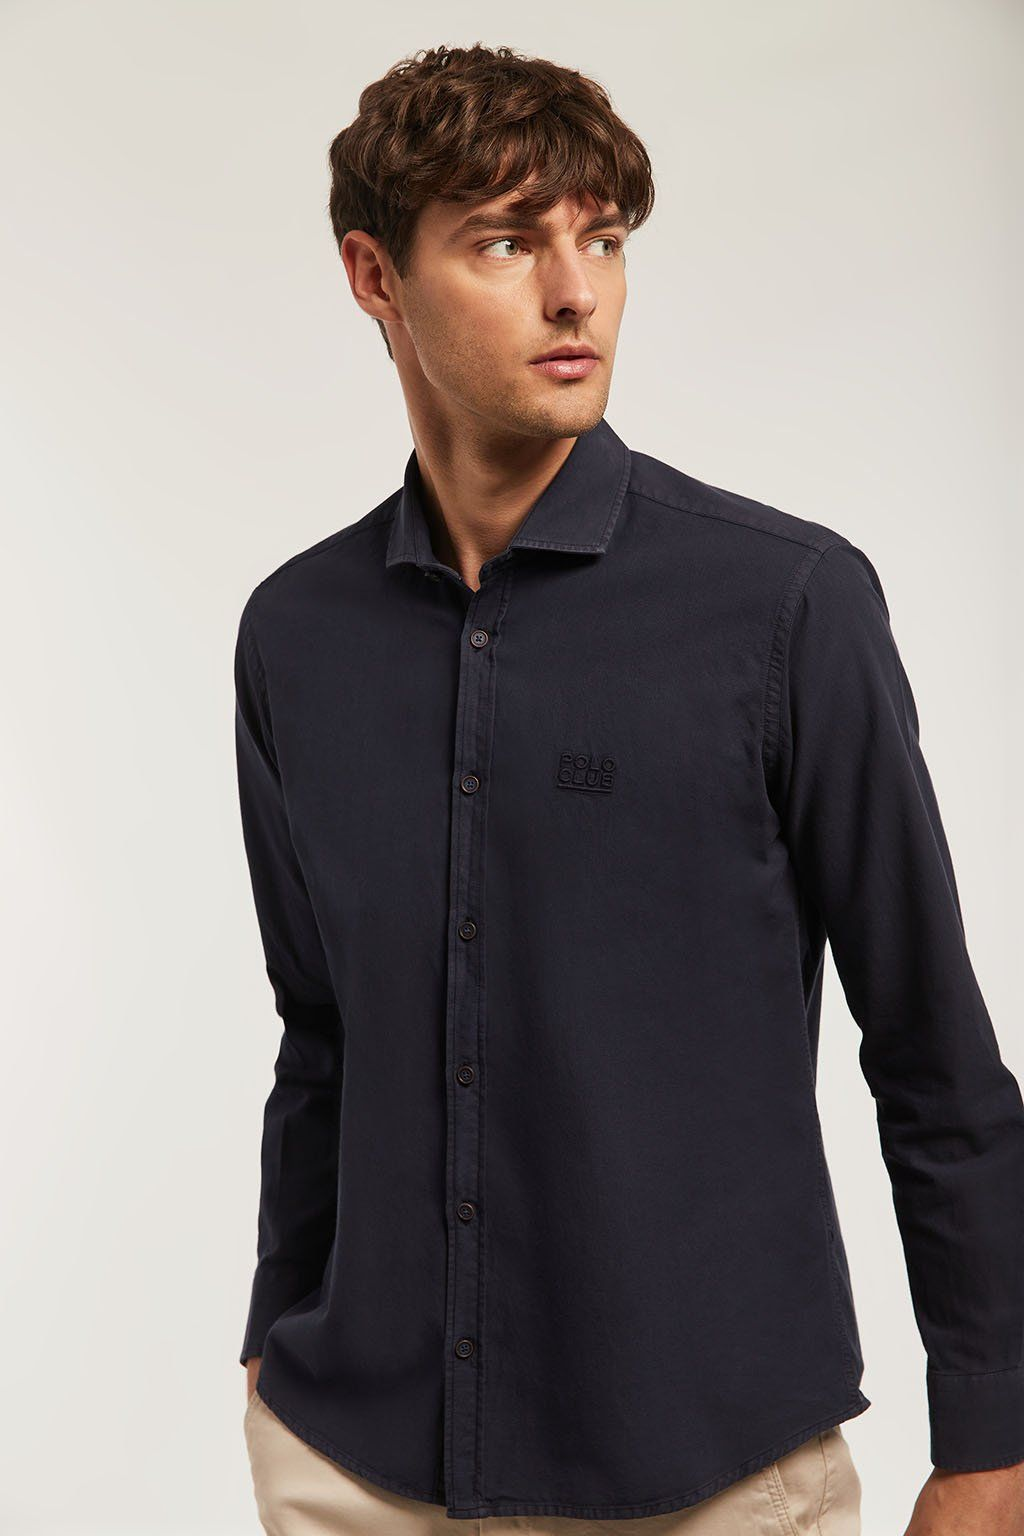 Navy blue washed shirt with matching colour embroidery